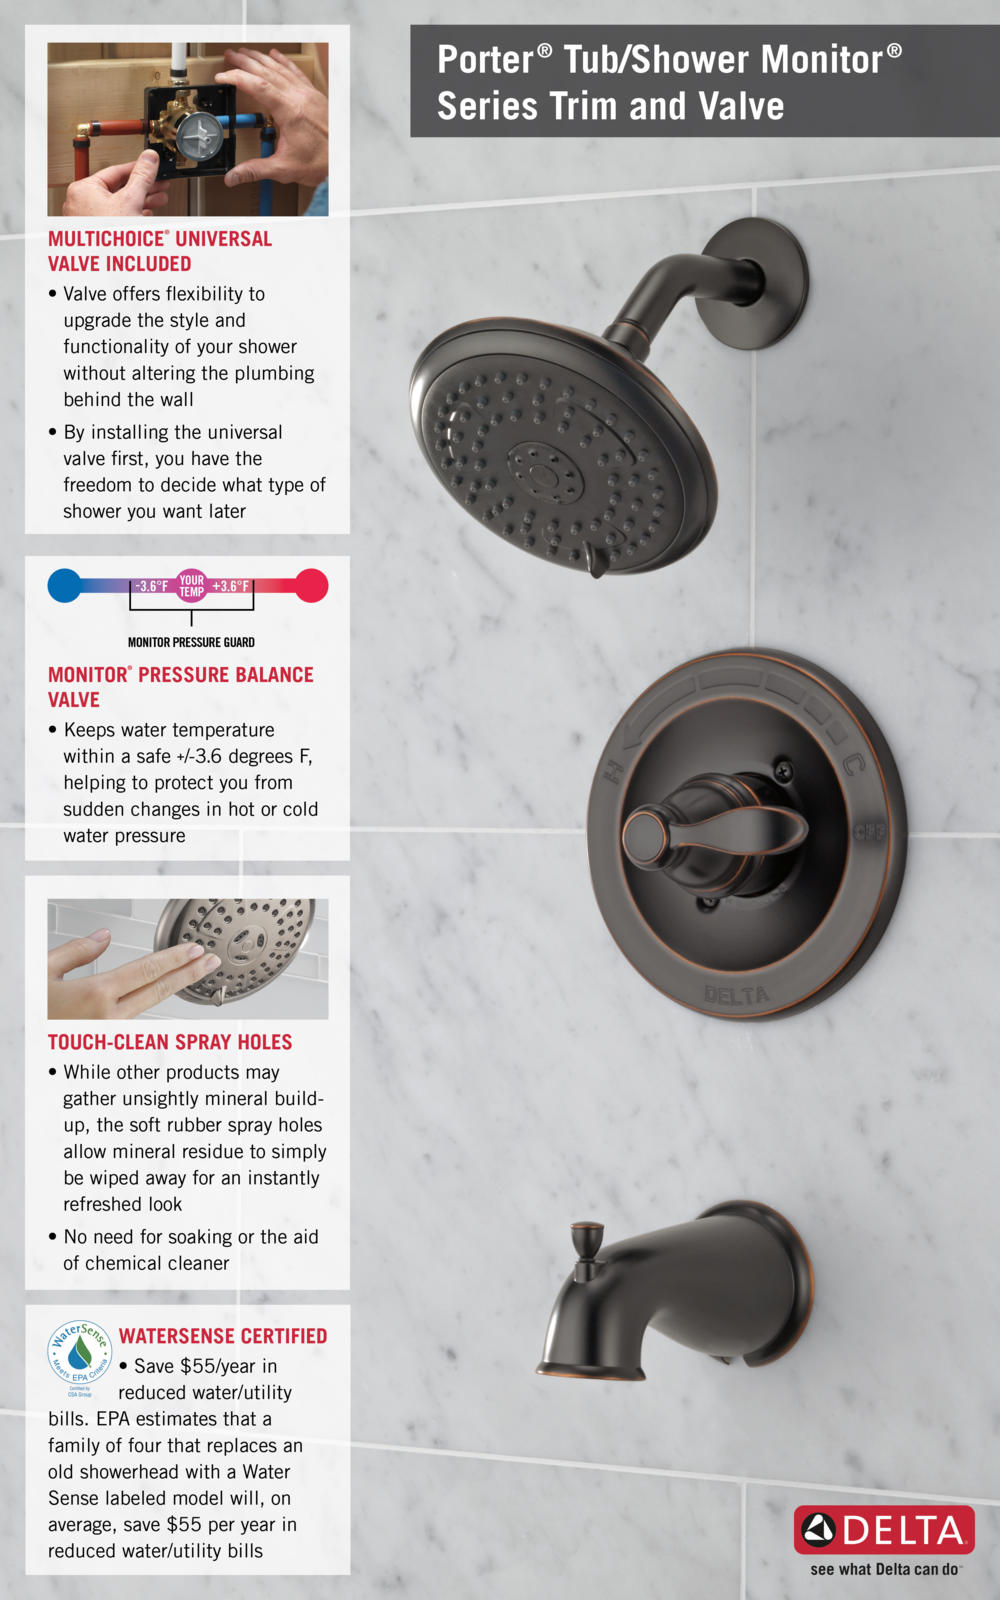 Home Depot Faucet 144984-OB-A T14 Shower with Valve Infographic